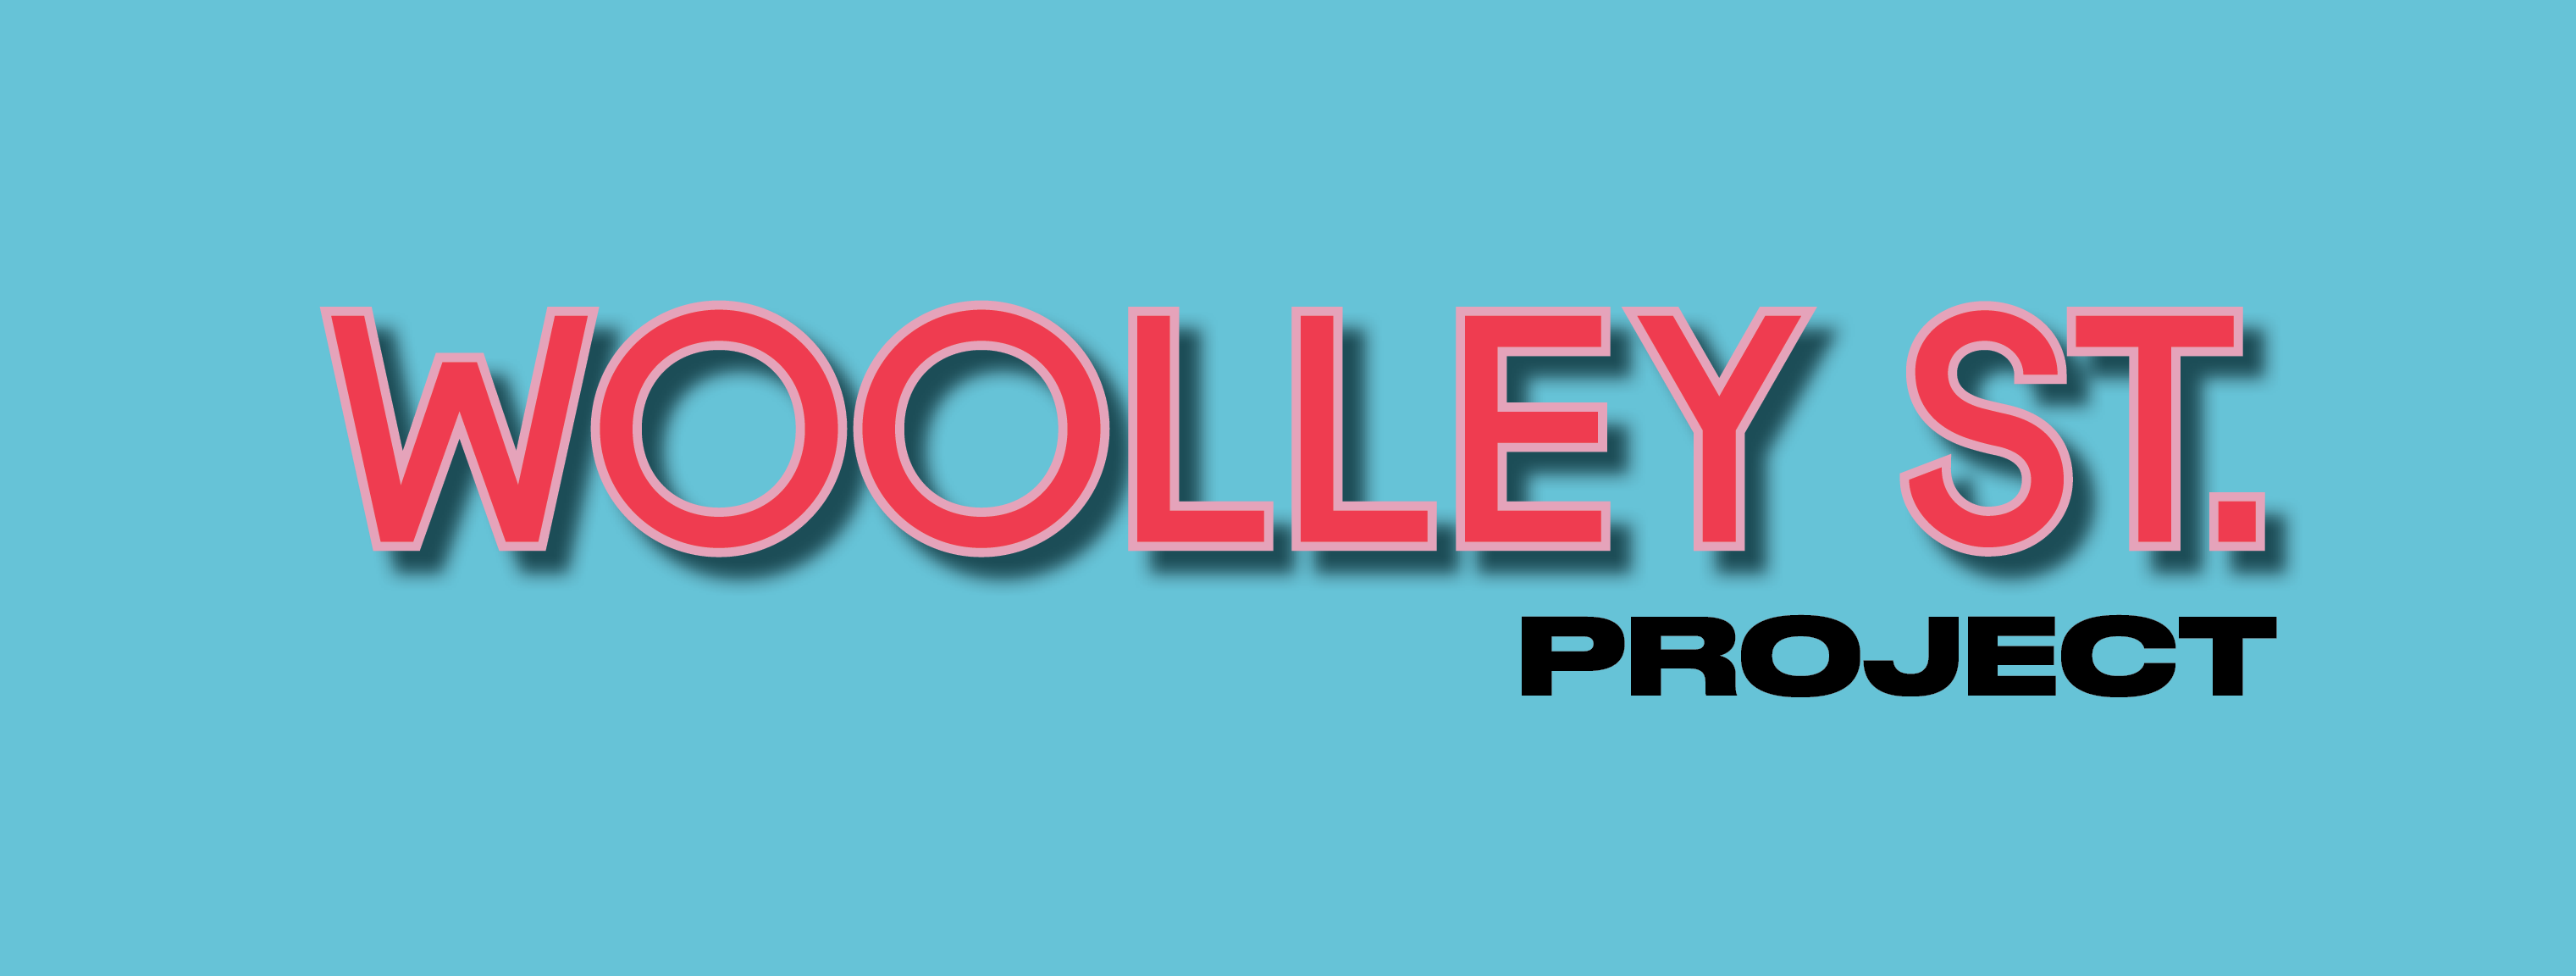 woolley st project header